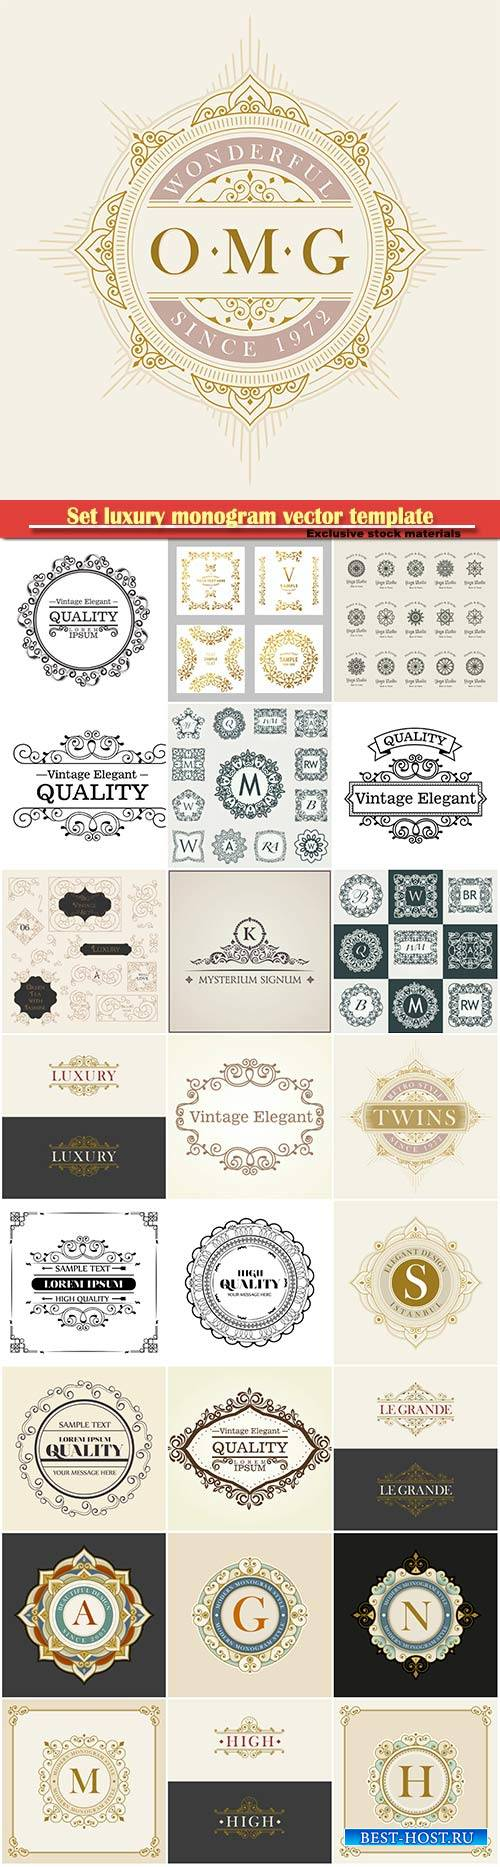 Set luxury monogram vector template, logos, badges, symbols # 4